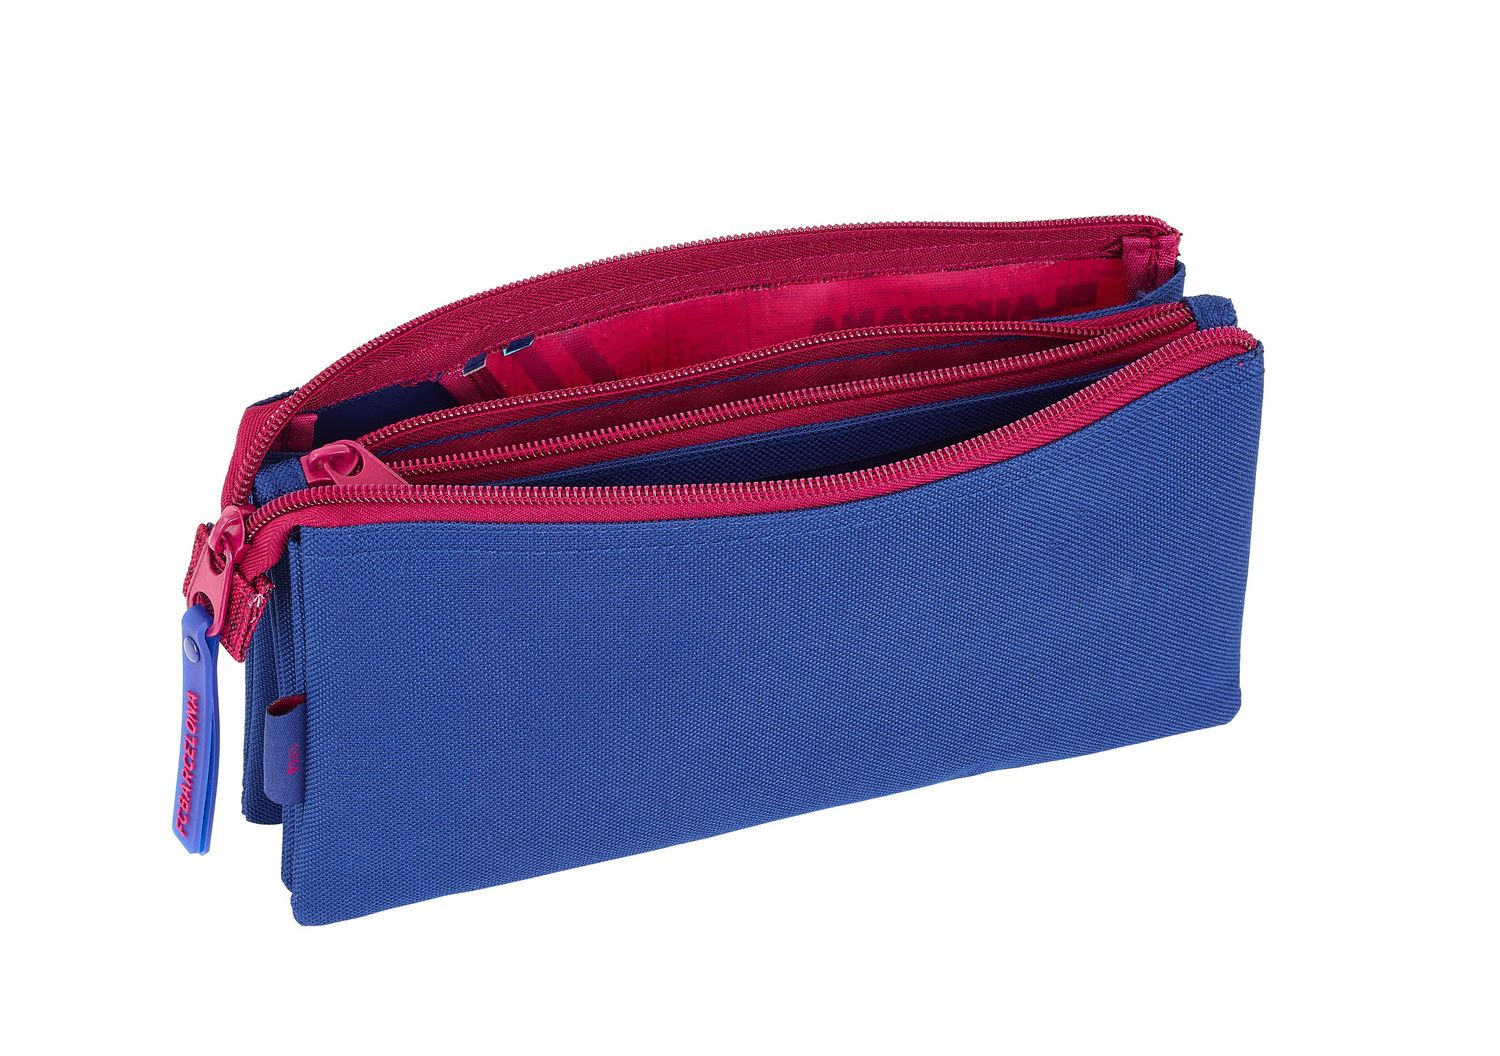 Triple Pencil Case F.C. Barcelona 1 Corporate – image 2